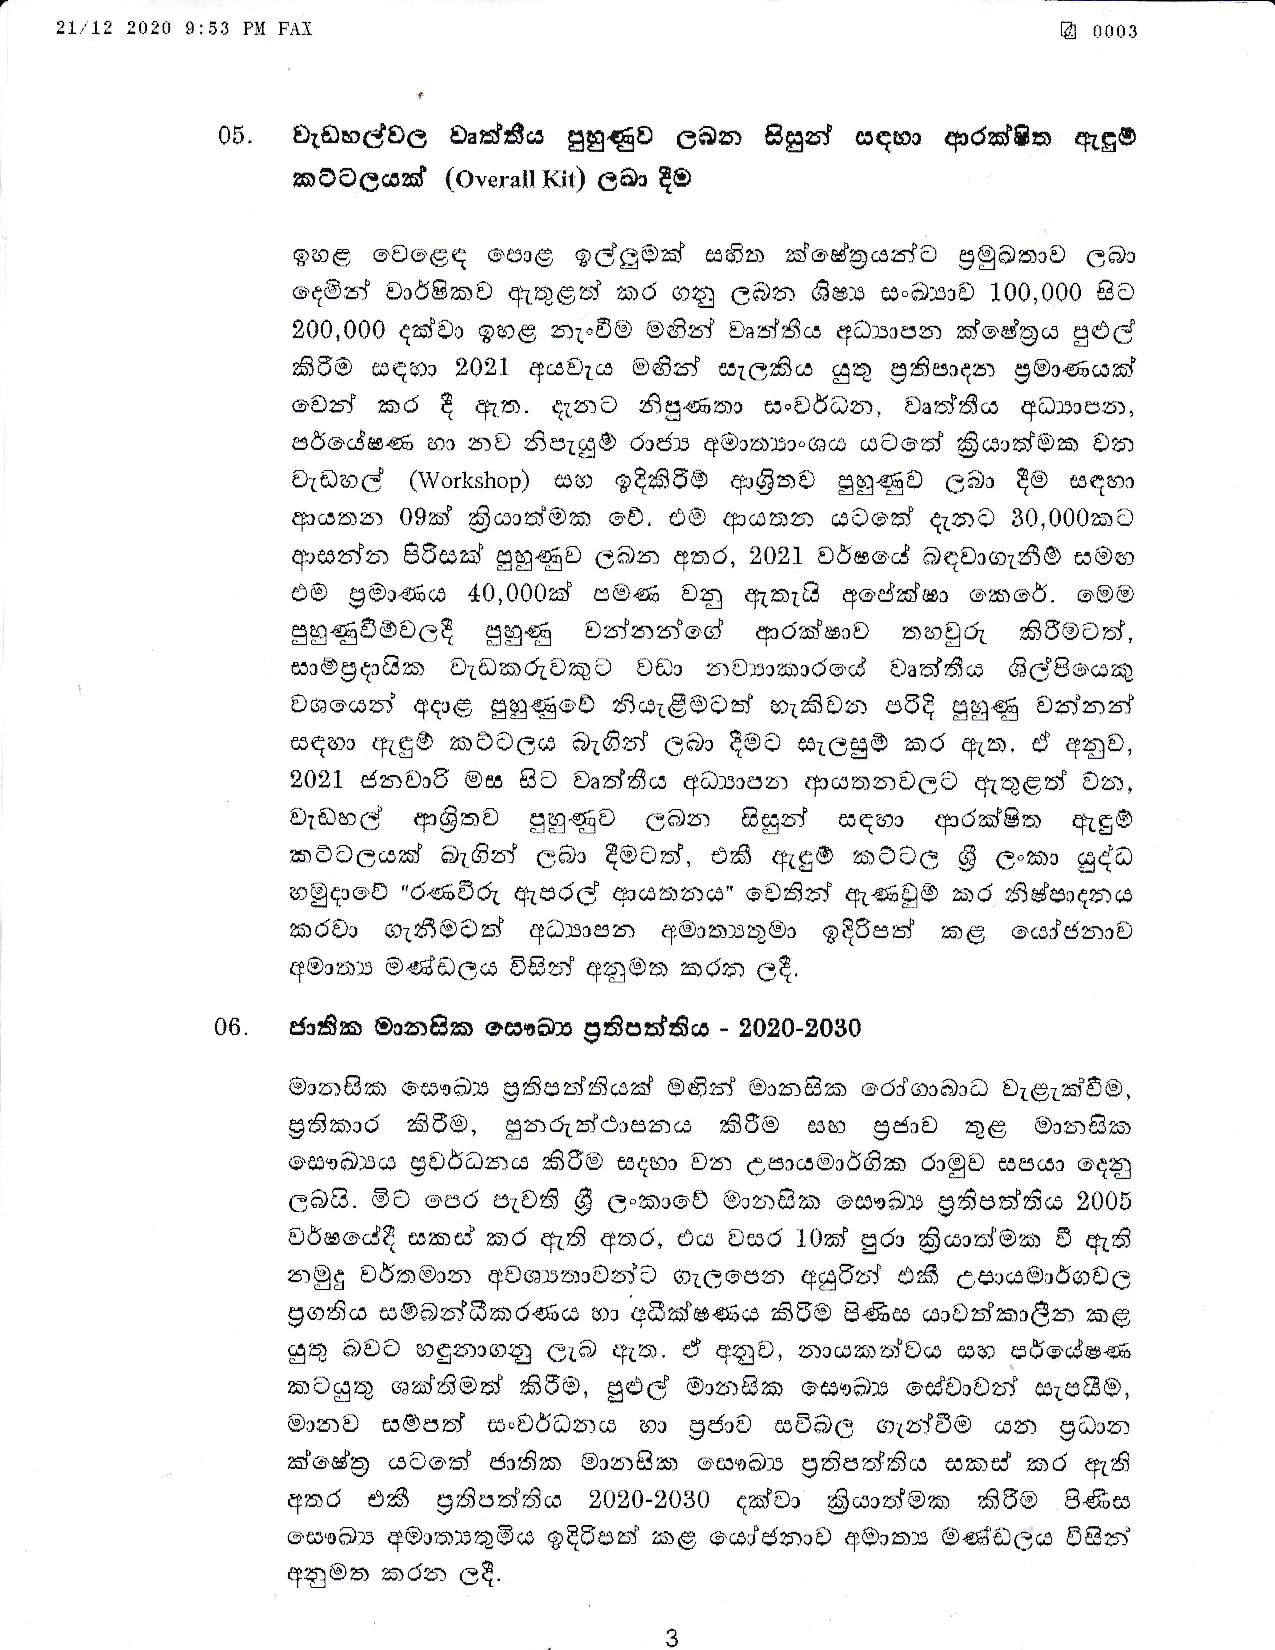 Cabinet Decision on 21.12.2020 page 003